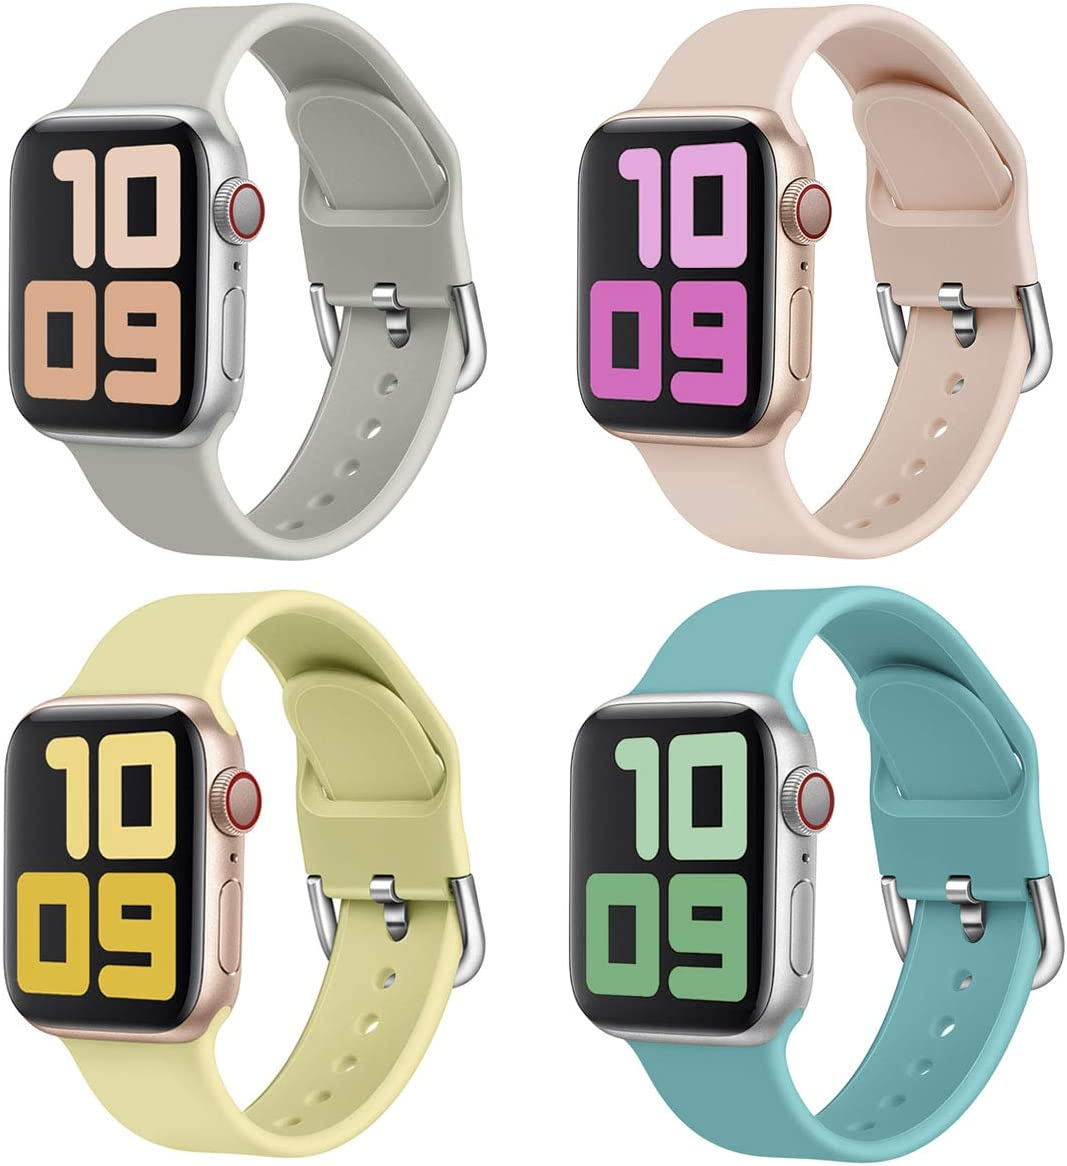 Graka Pack 4 Sport Band Compatible with Apple Watch Band 38mm 40mm 42mm 44mm Soft Silicone Strap Women Men Replacement for iWatch Series SE/6/5/4/3/2/1